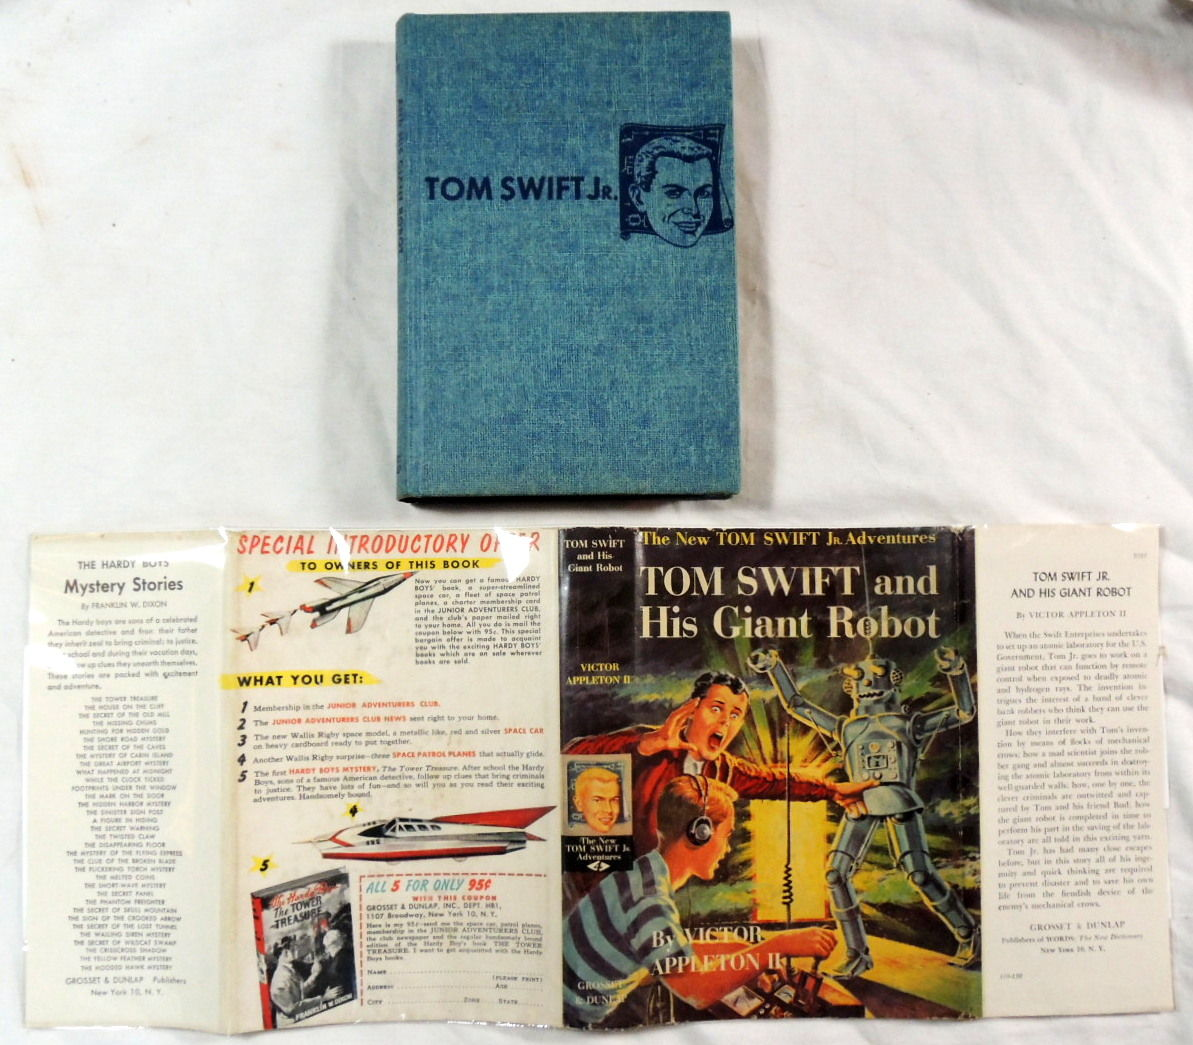 Tom Swift Jr Adventures Tom Swift and his Outpost in Space #6 Appleton II 1955